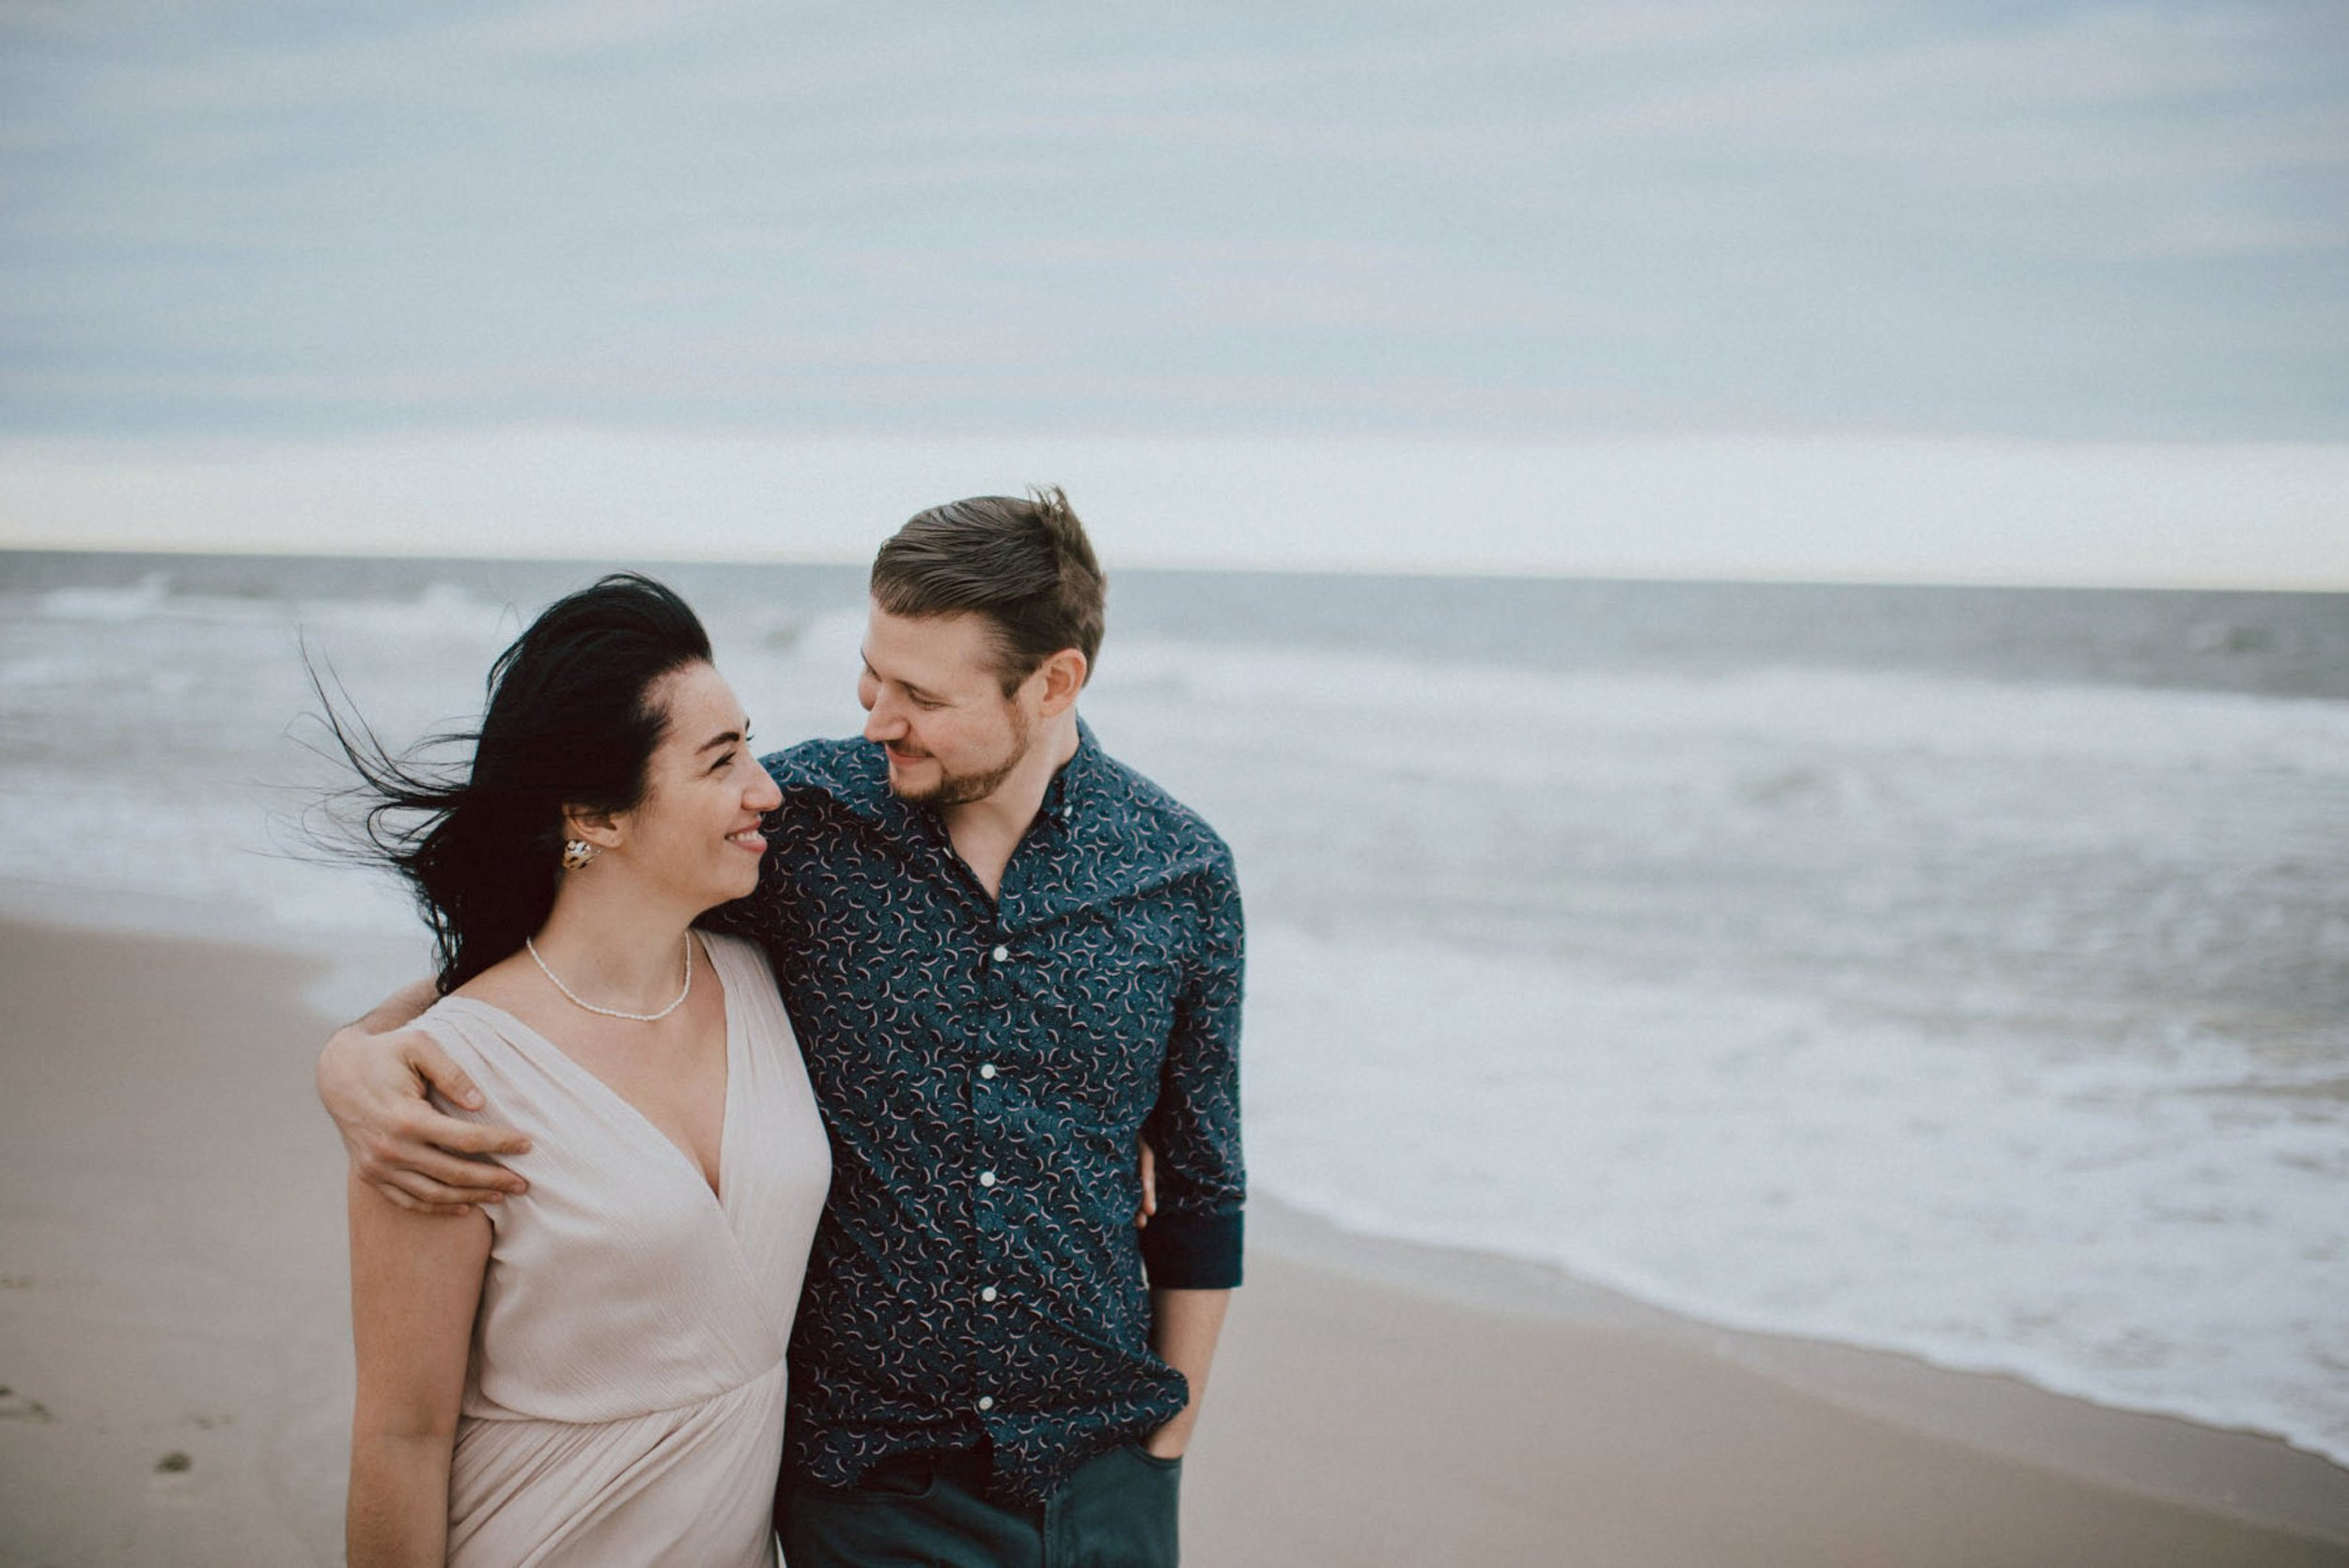 Long-beach-island-engagement-session-22.jpg